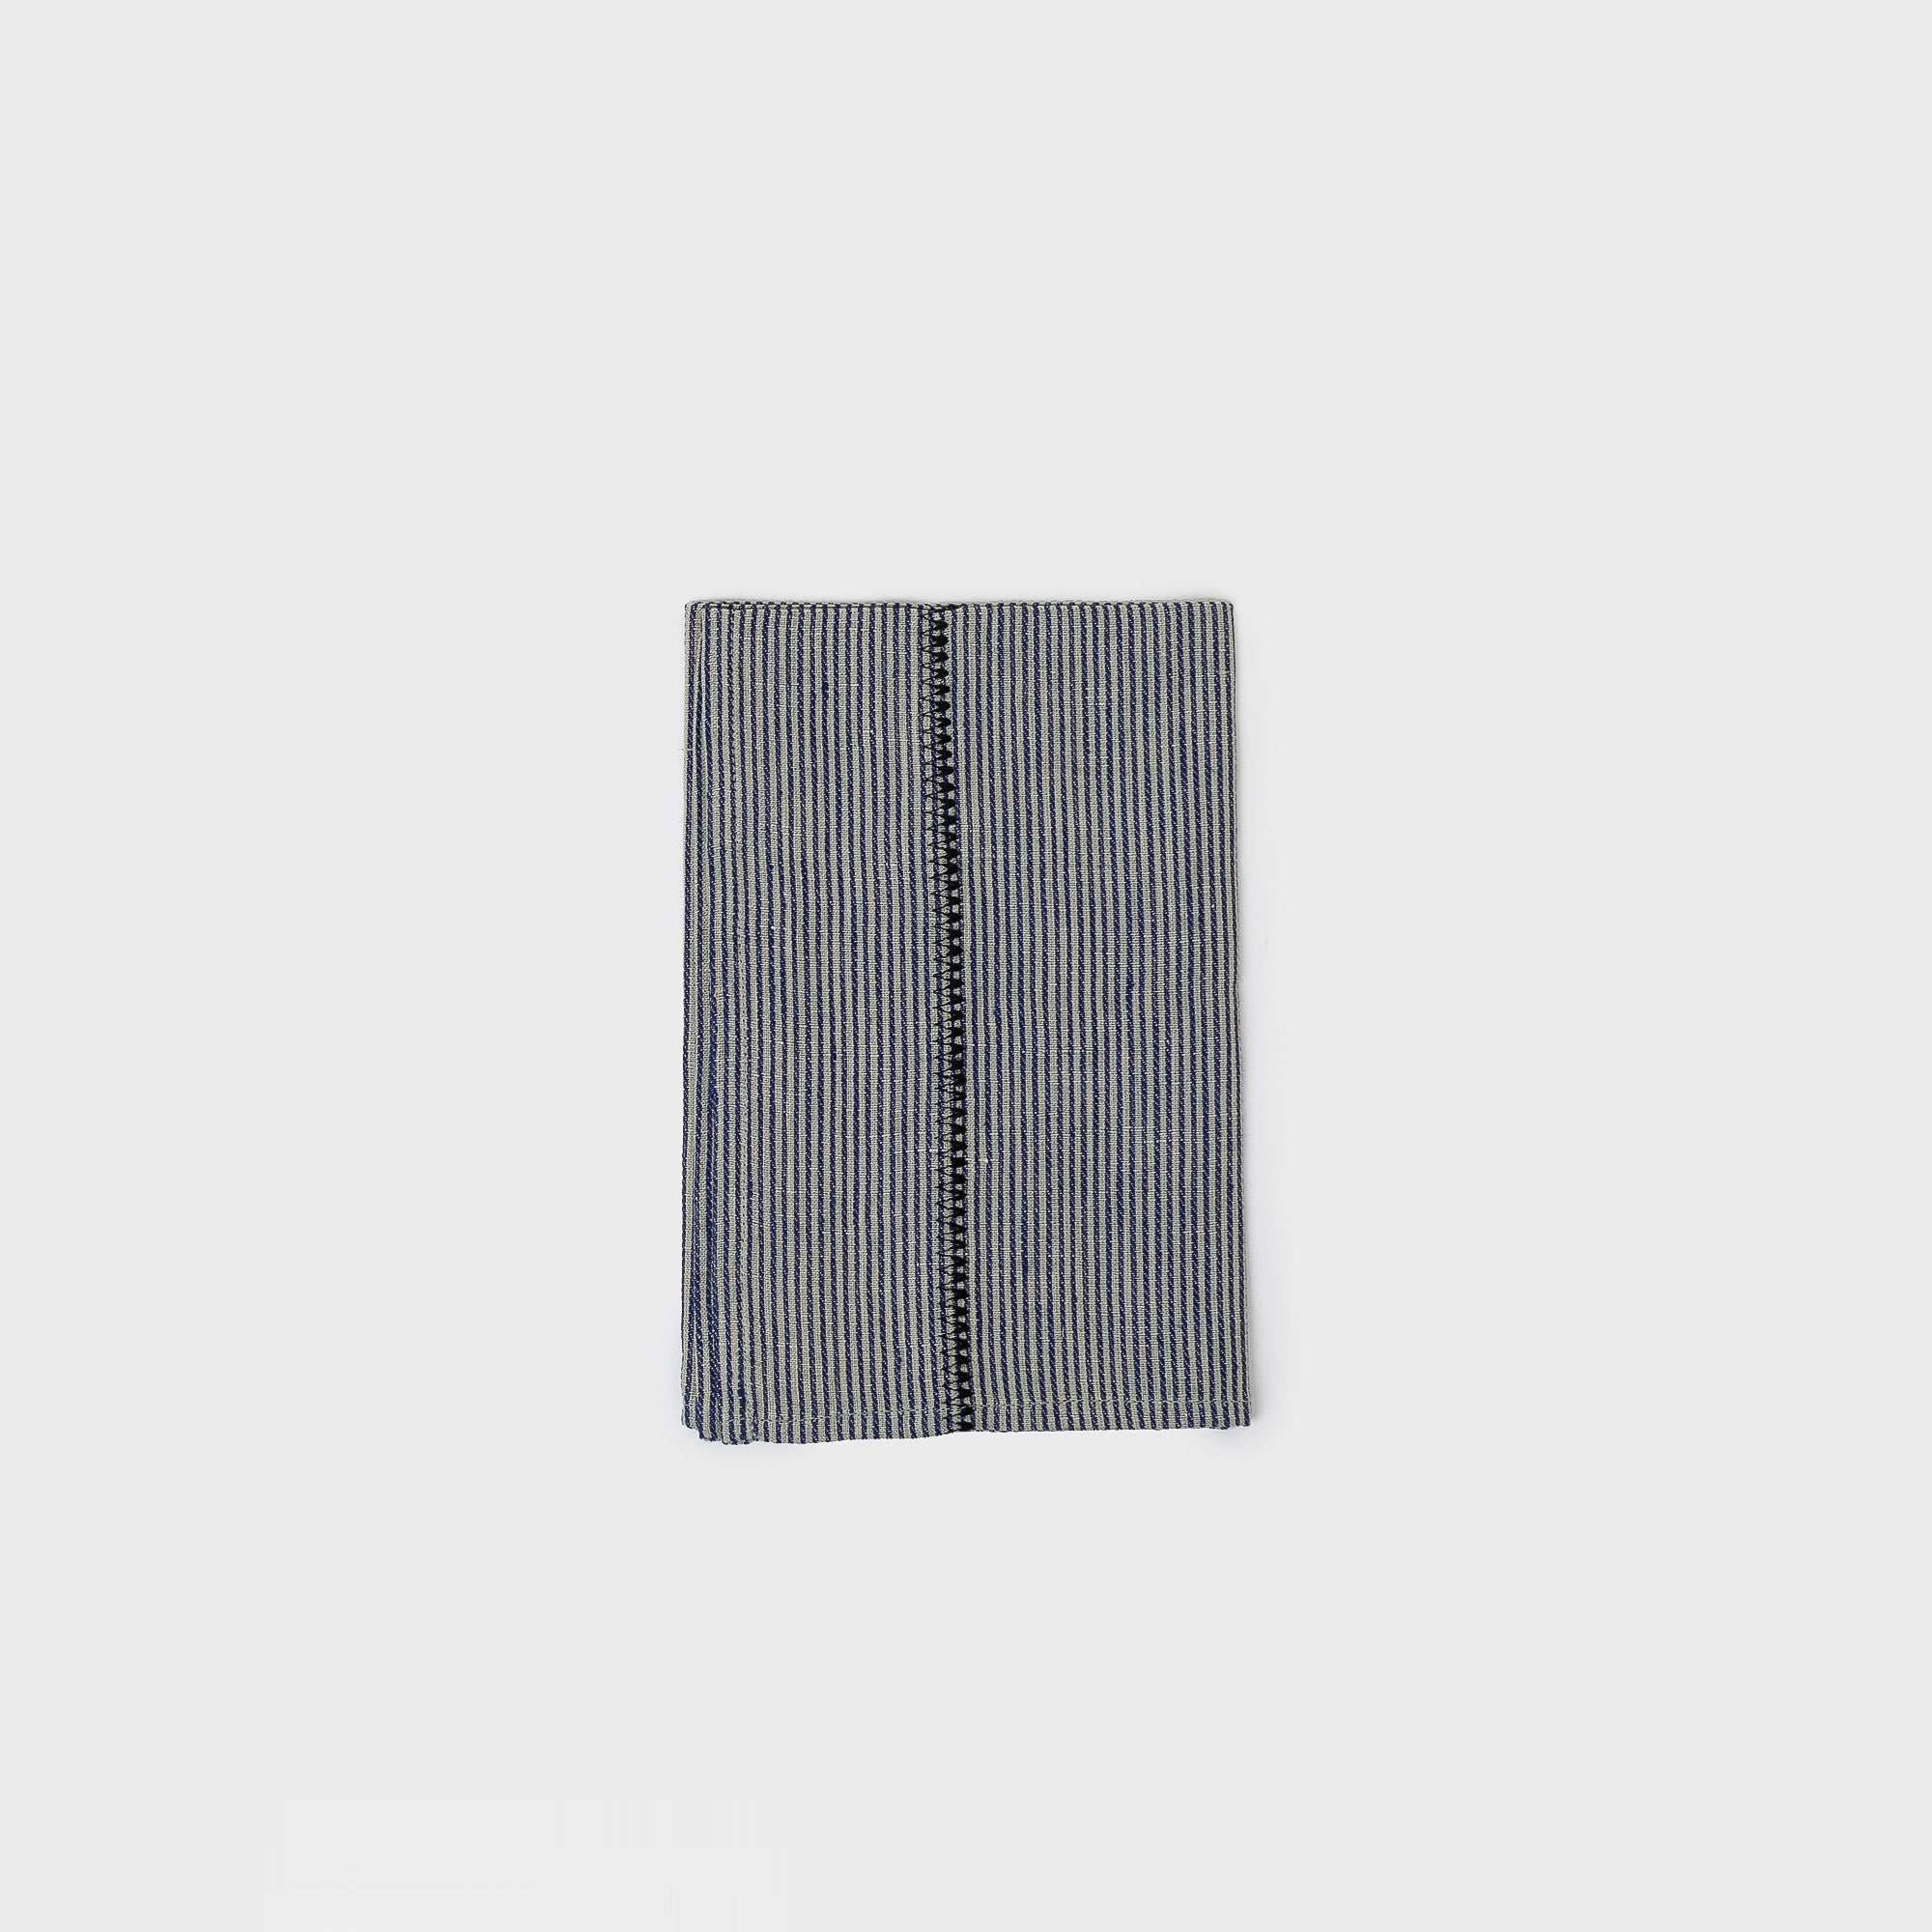 Linen Stitch Chambray Stripe Napkins